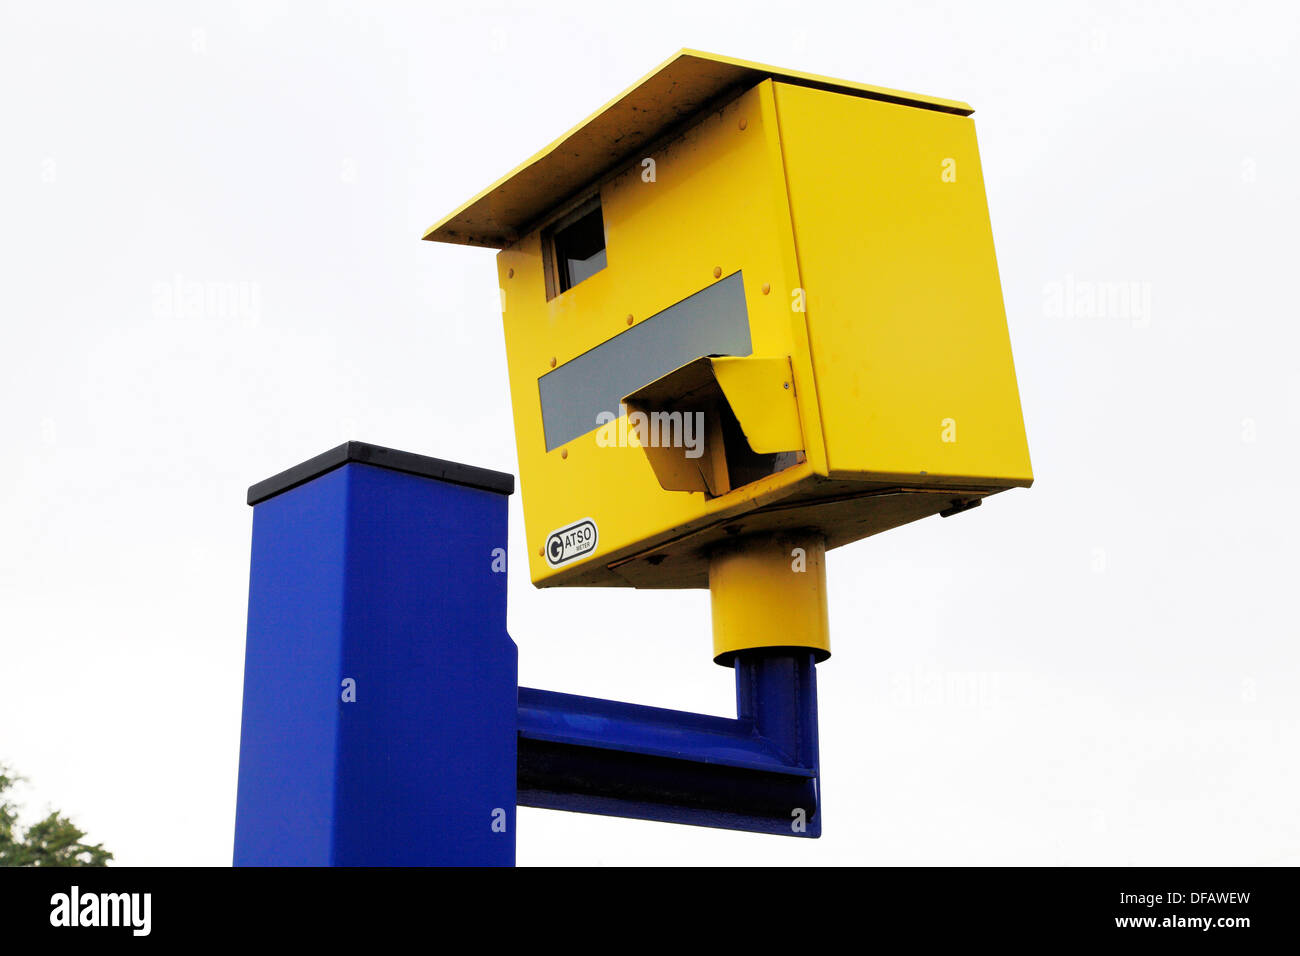 Speed Camera, roadside trap, Gatso meter, England UK traffic calming device cameras - Stock Image